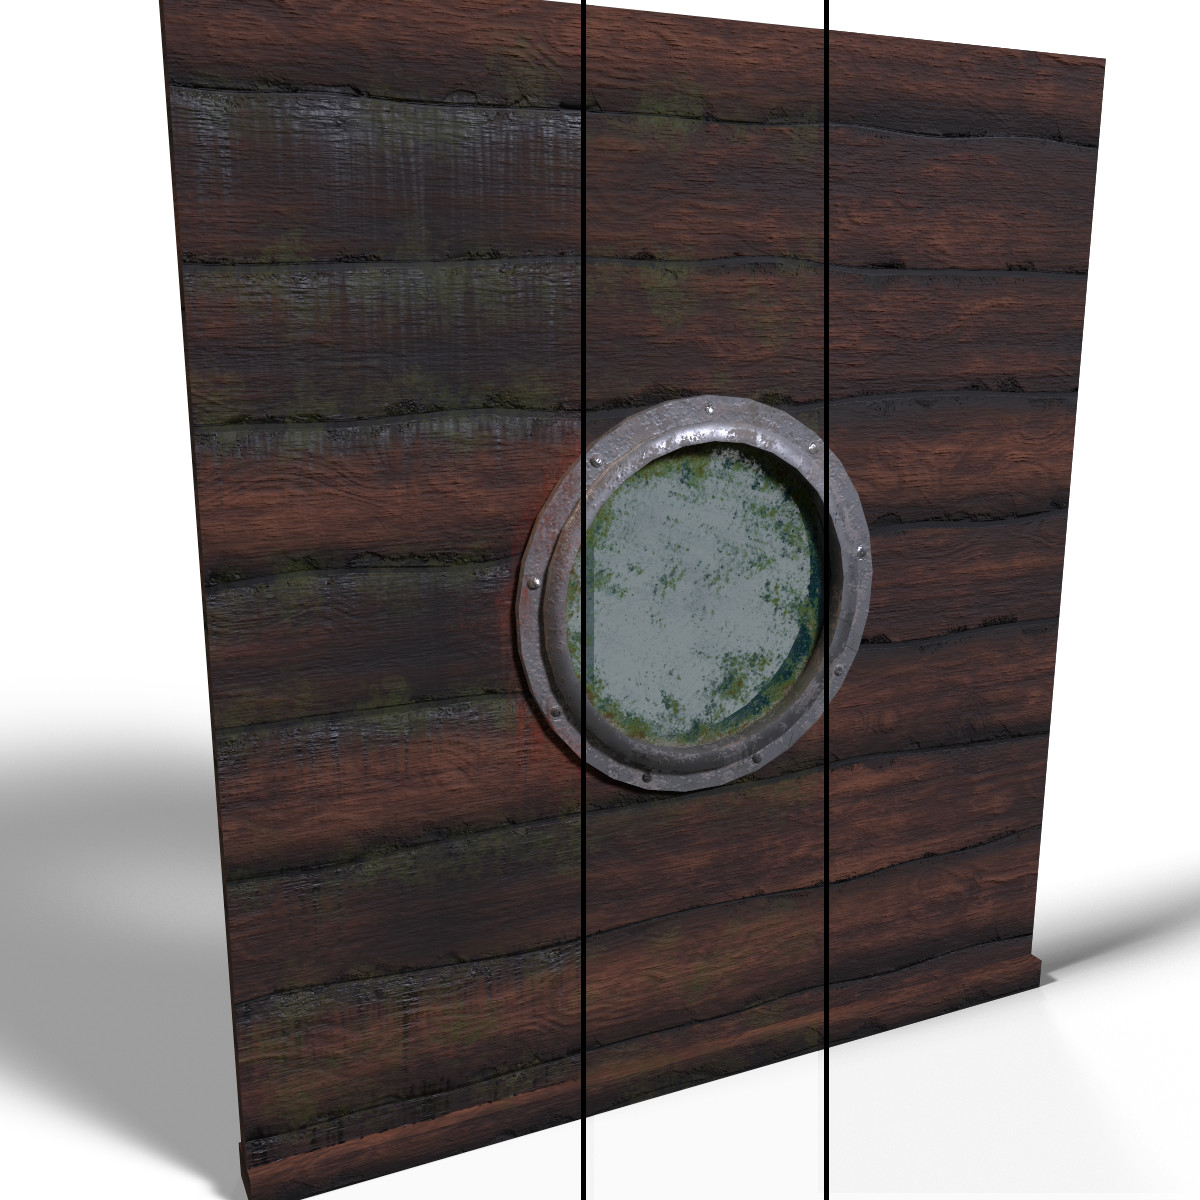 All assets 3 texture variations.  1. Moss and Caulking run off 2. Moss only 3. Clean texture